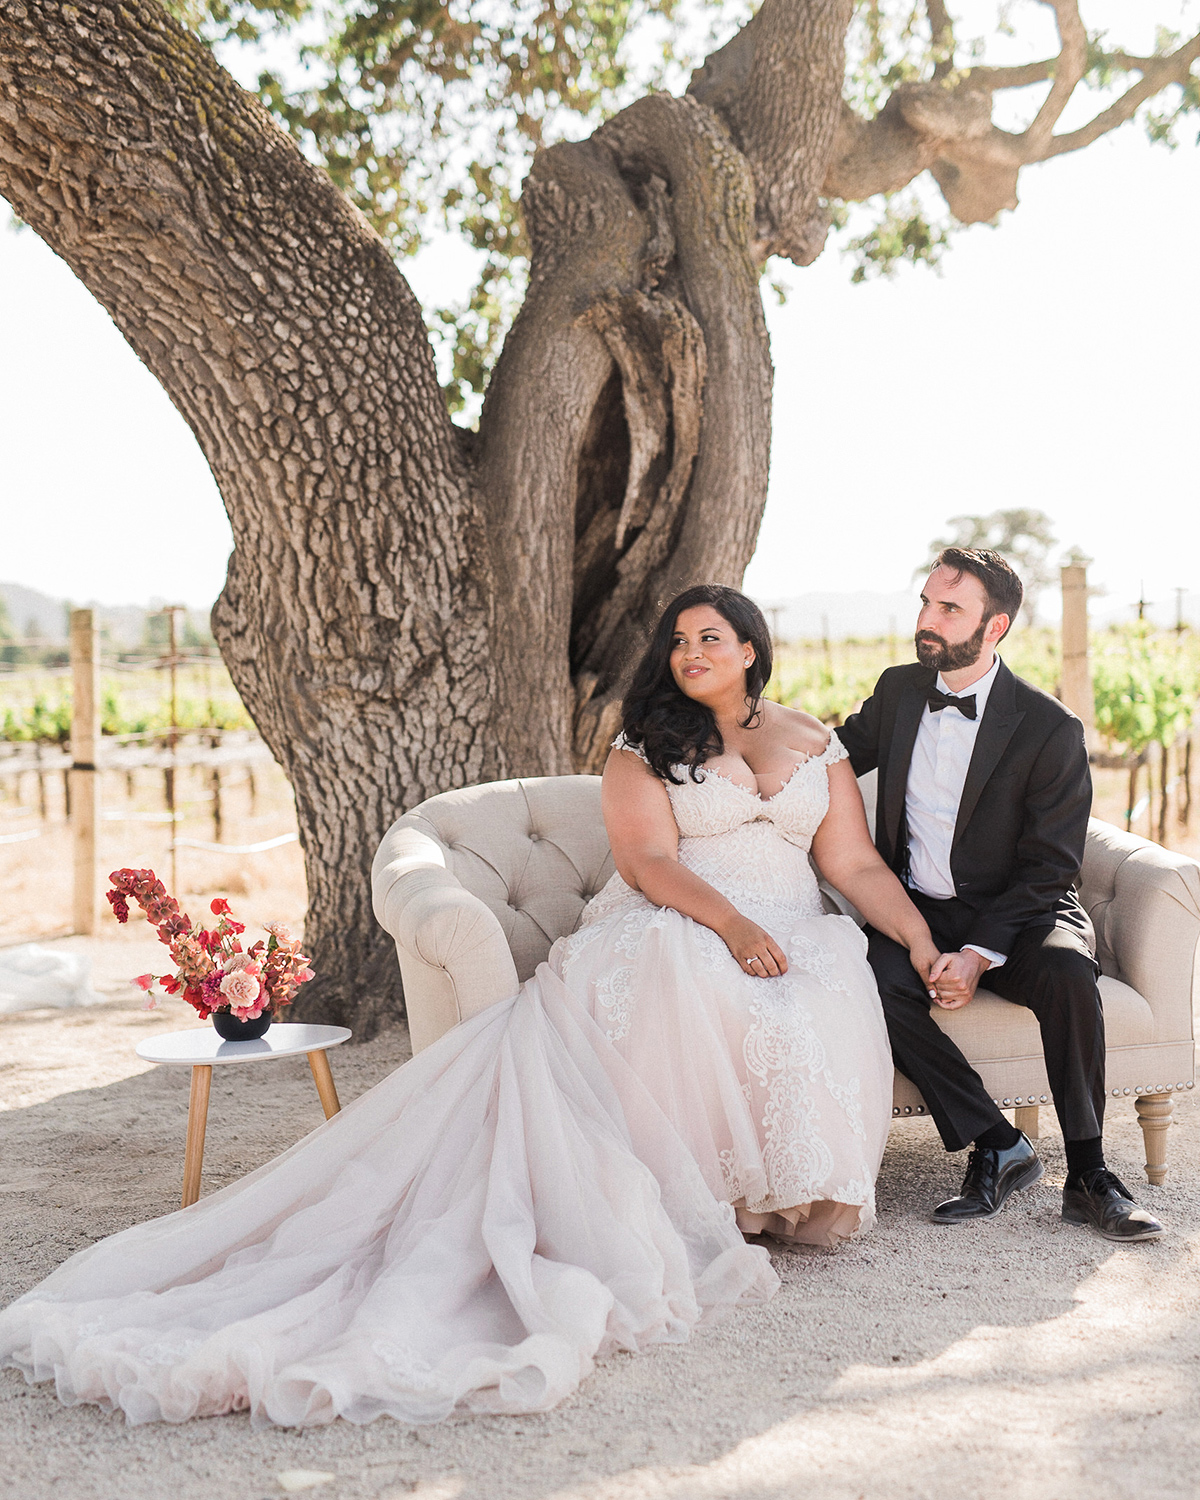 bride and groom outside sitting on cream colored couch